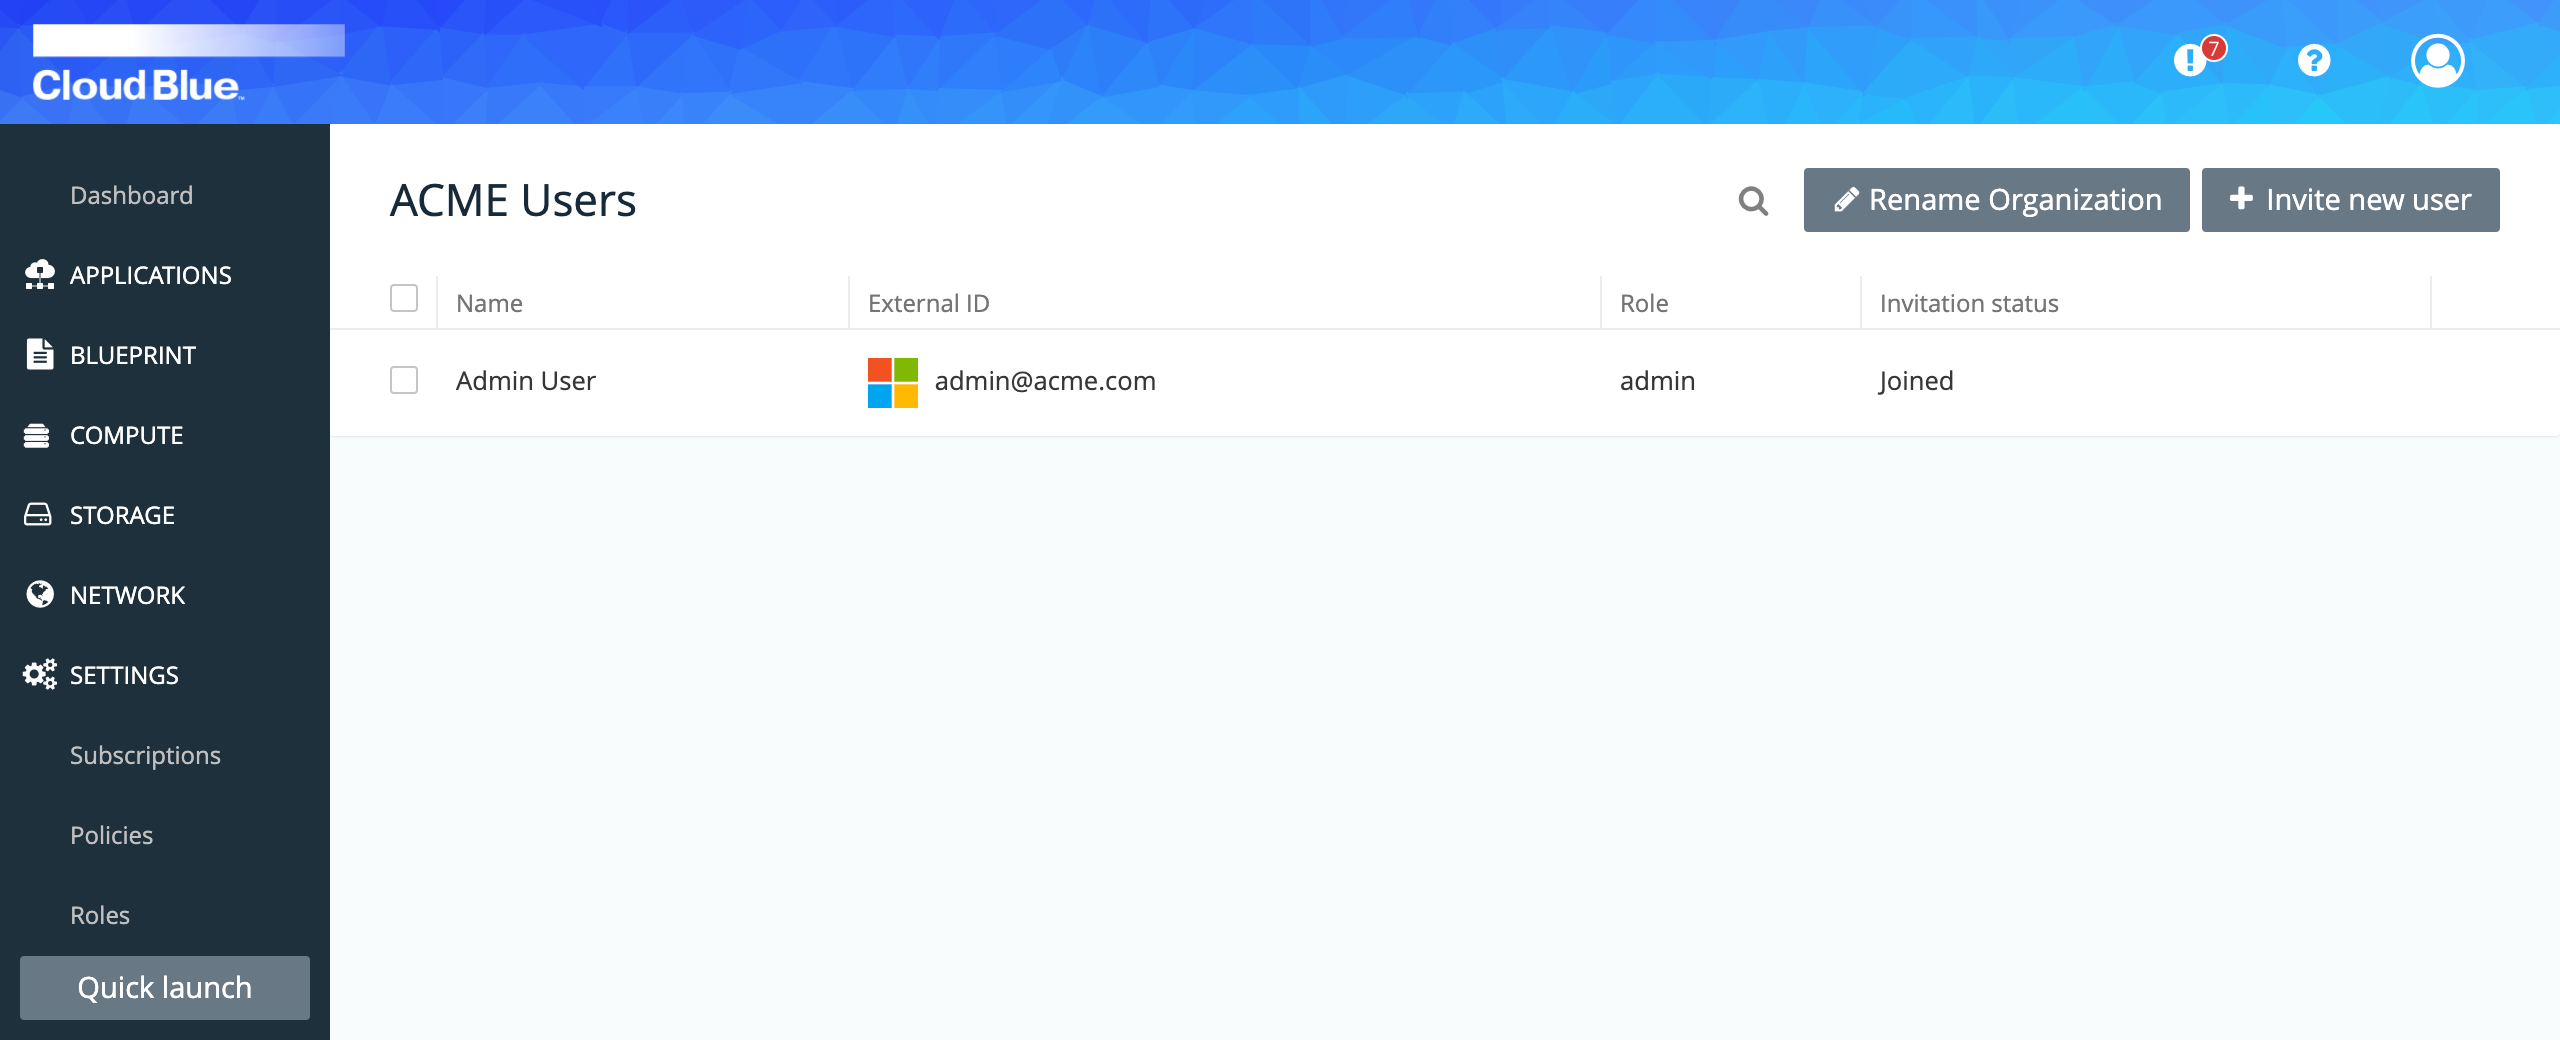 User accounts overview